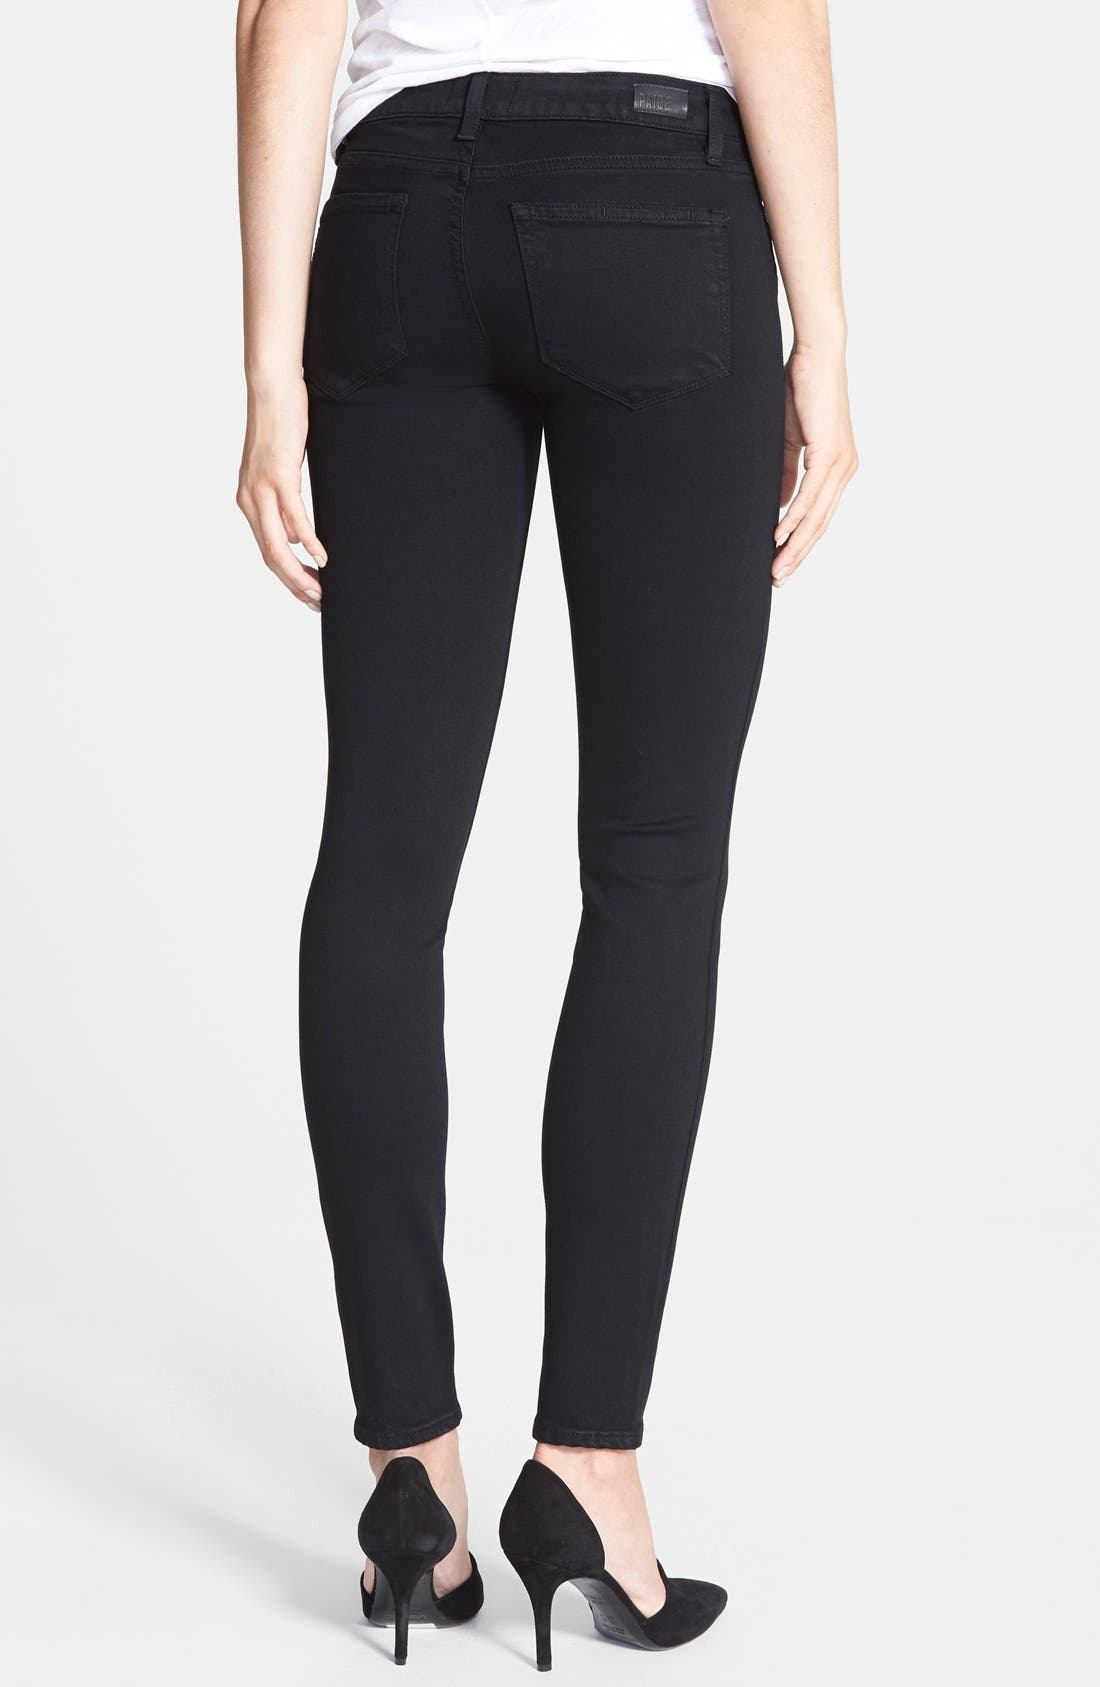 Transcend - Verdugo Ultra Skinny Jeans,                             Alternate thumbnail 9, color,                             BLACK SHADOW